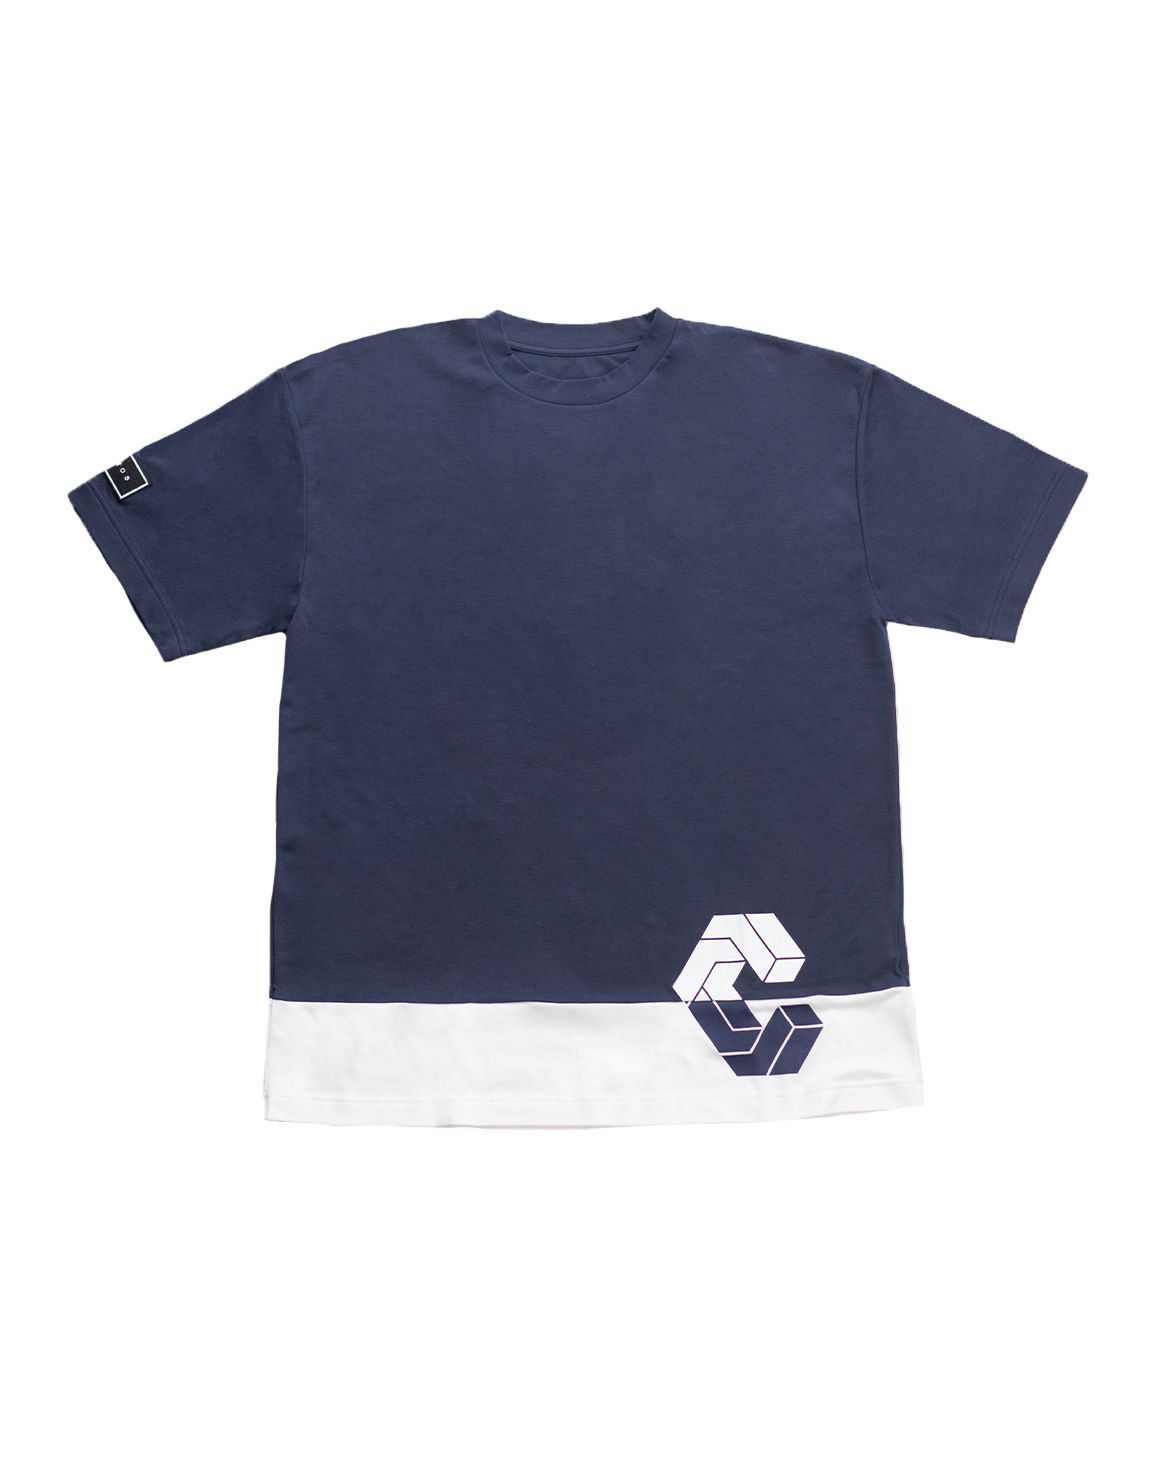 <img class='new_mark_img1' src='https://img.shop-pro.jp/img/new/icons1.gif' style='border:none;display:inline;margin:0px;padding:0px;width:auto;' />CRONOS MODE SIDE LOGO OVER SIZE T-SHIRTS【NAVY×WHITE】